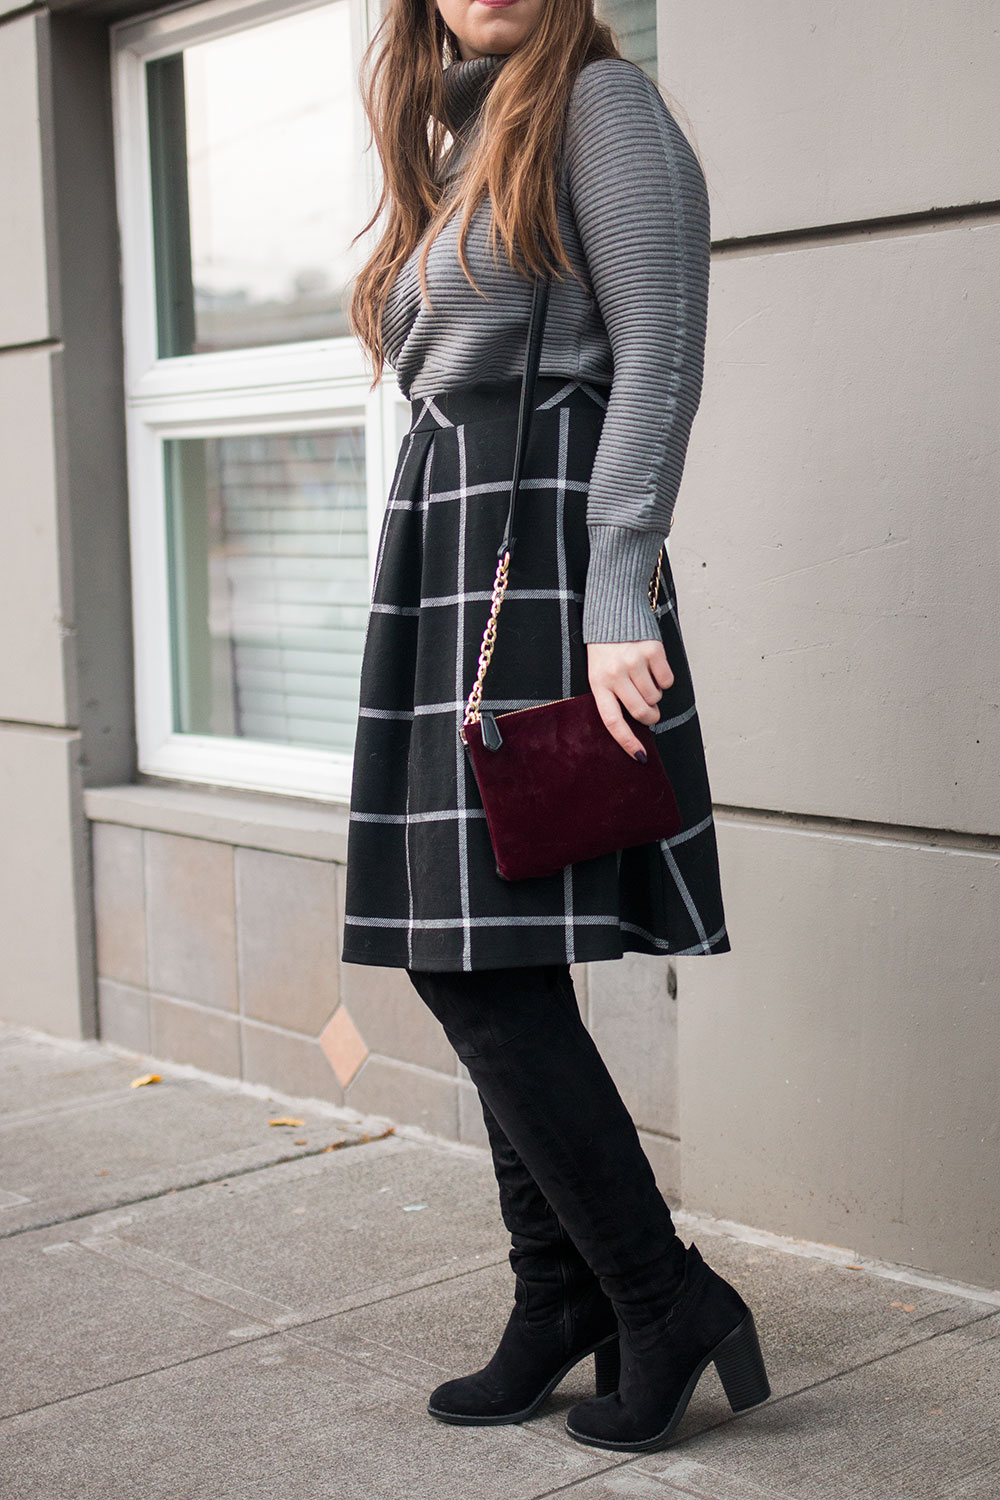 Dressy Winter Outfit Ideas for Every Day // Hello Rigby Seattle Fashion Blog